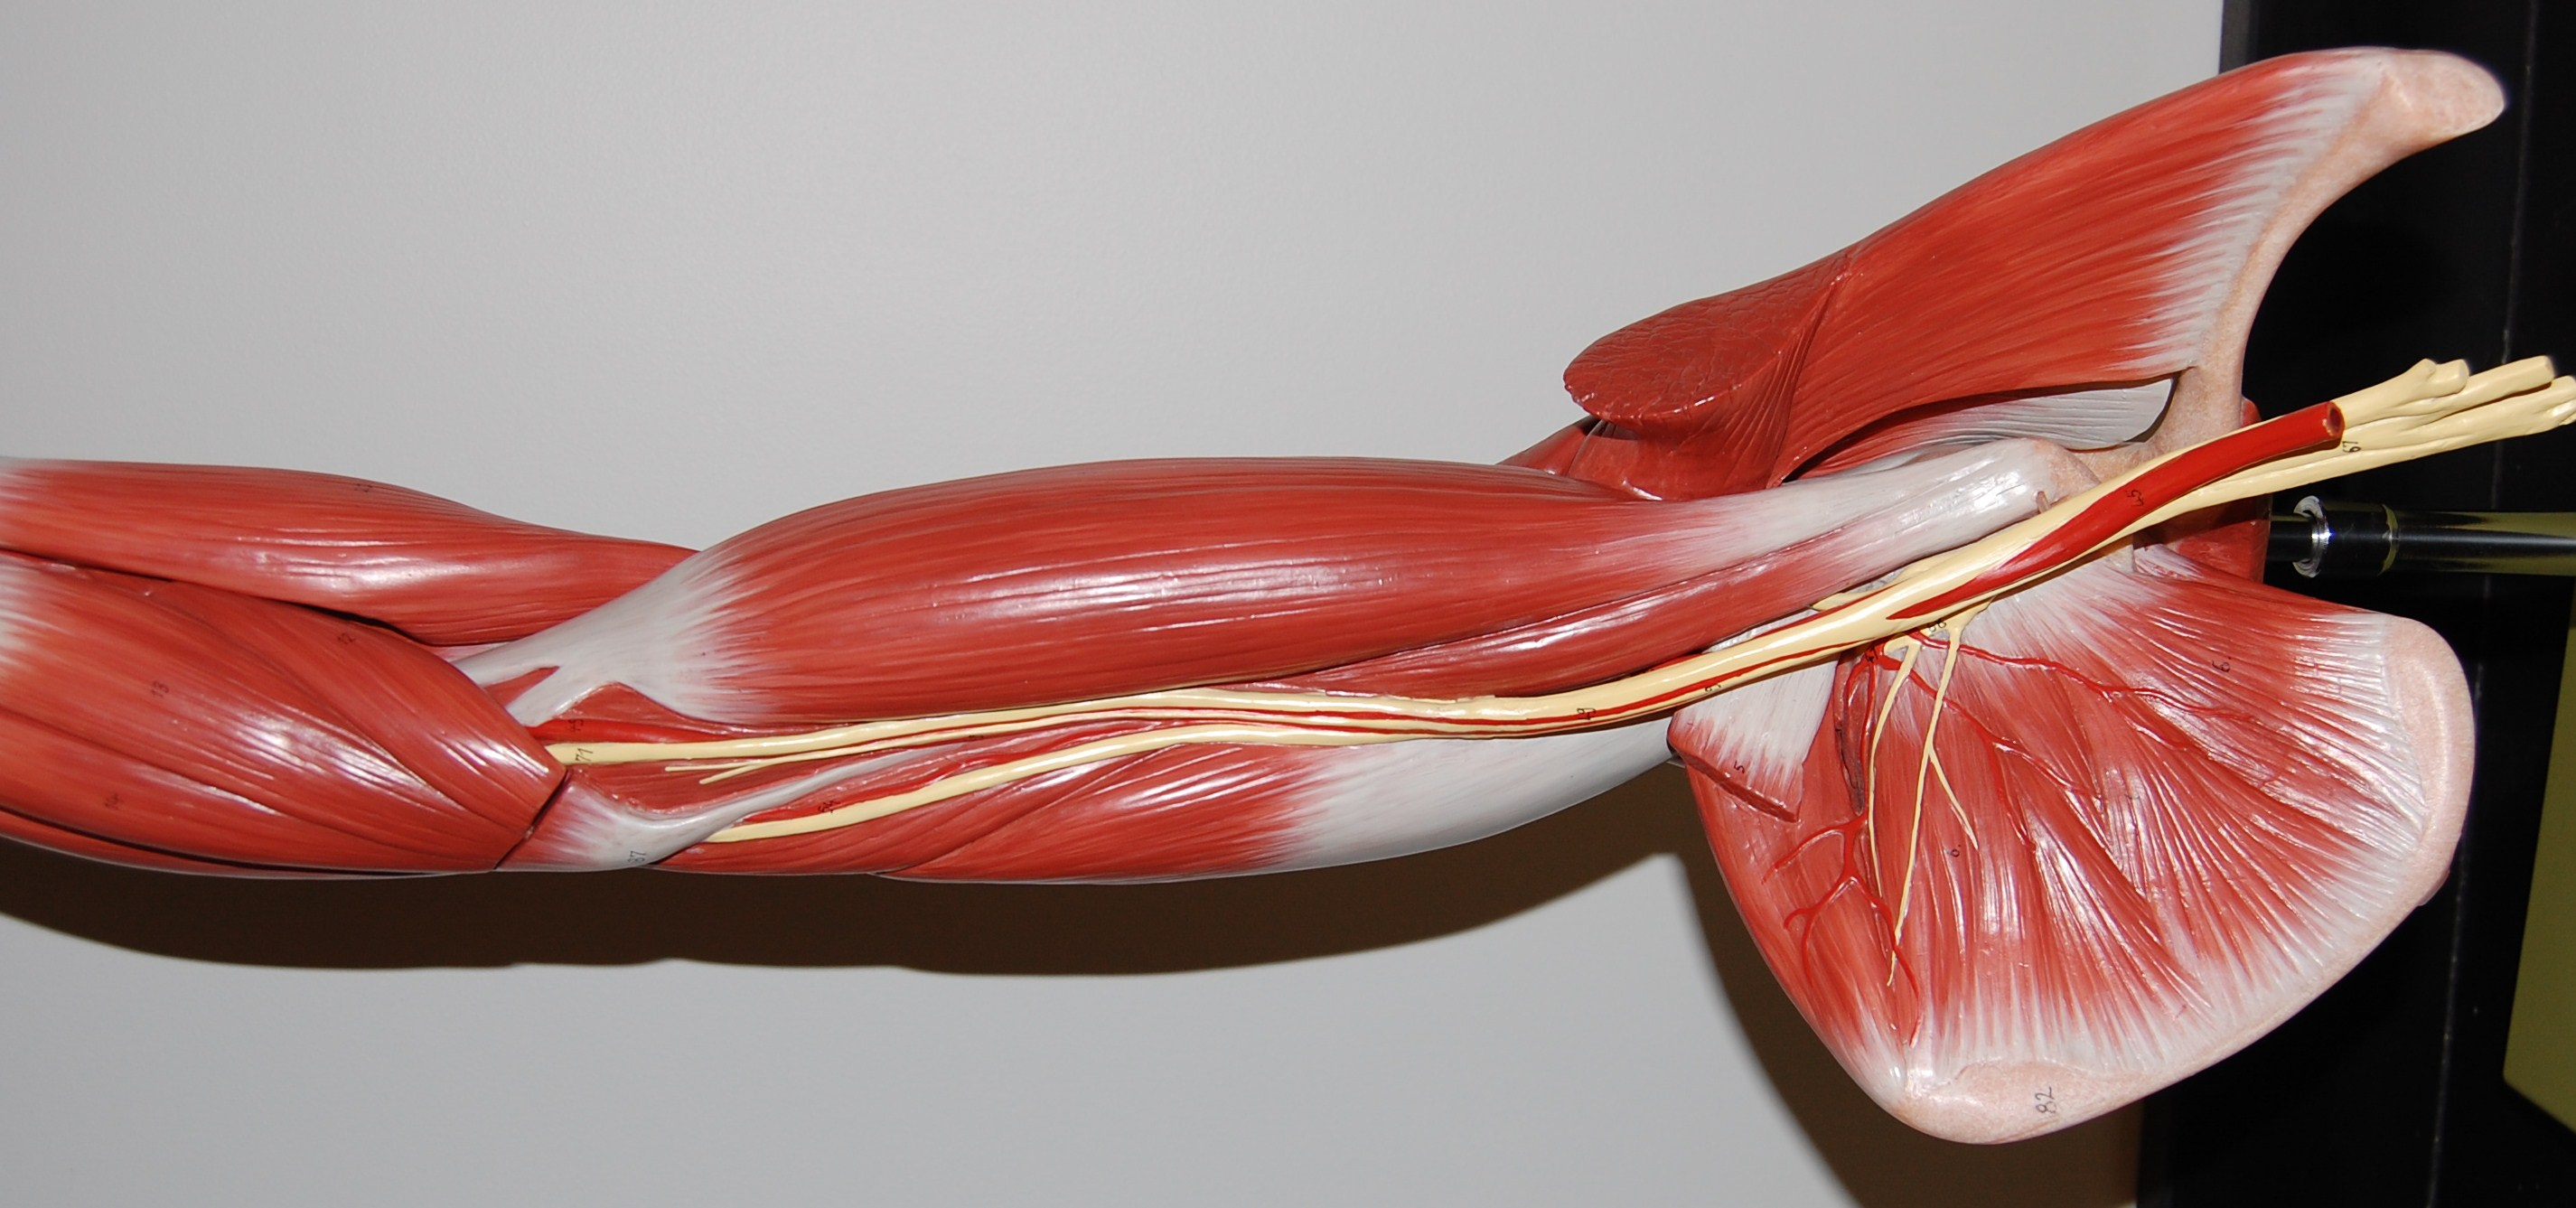 Muscles Of The Upper Arm And Shoulder Anterolateral View